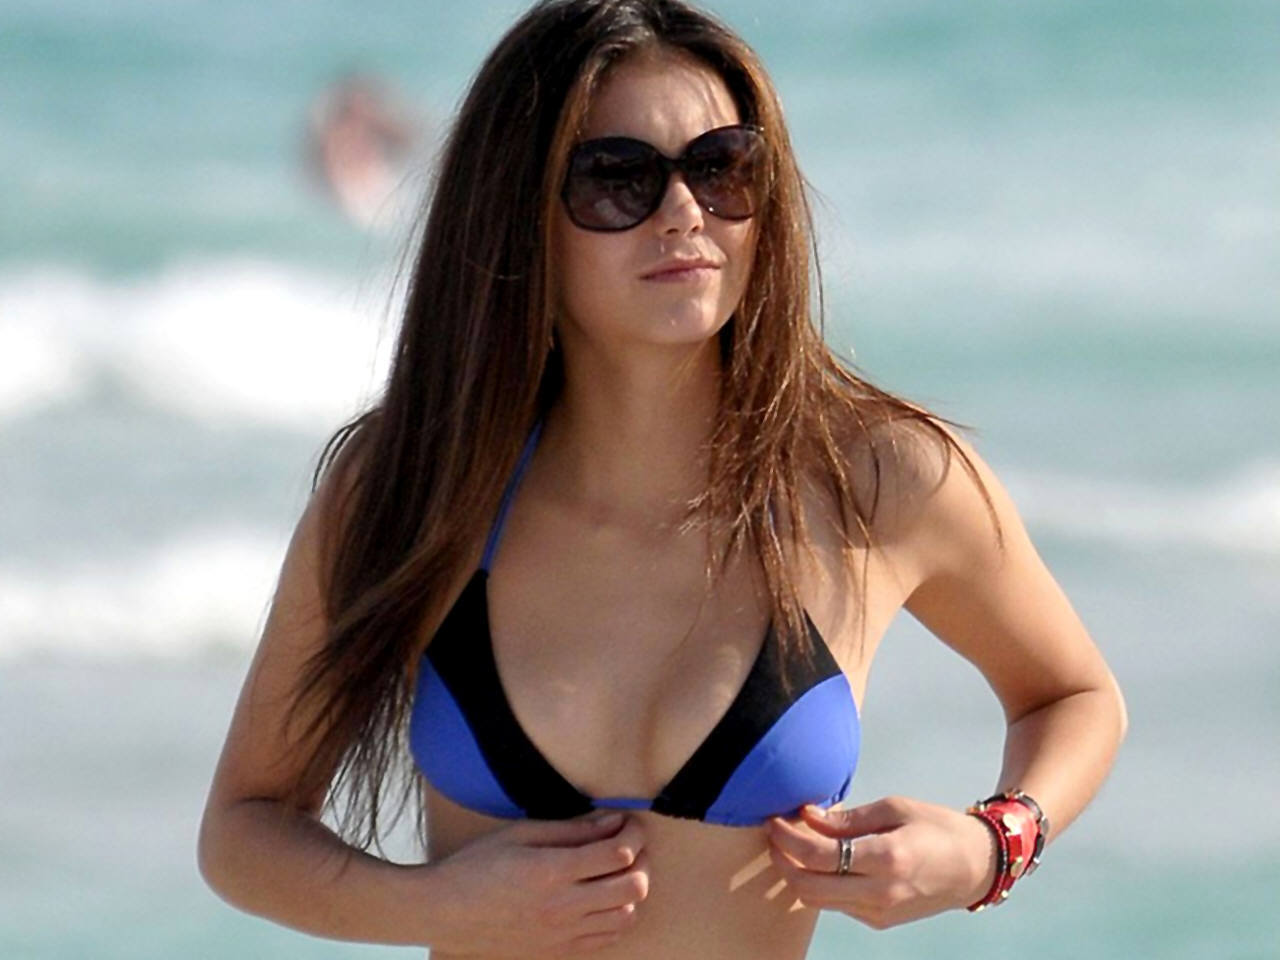 http://images4.fanpop.com/image/photos/19000000/Nina-Dobrev-nina-dobrev-and-candice-accola-19082054-1280-960.jpg